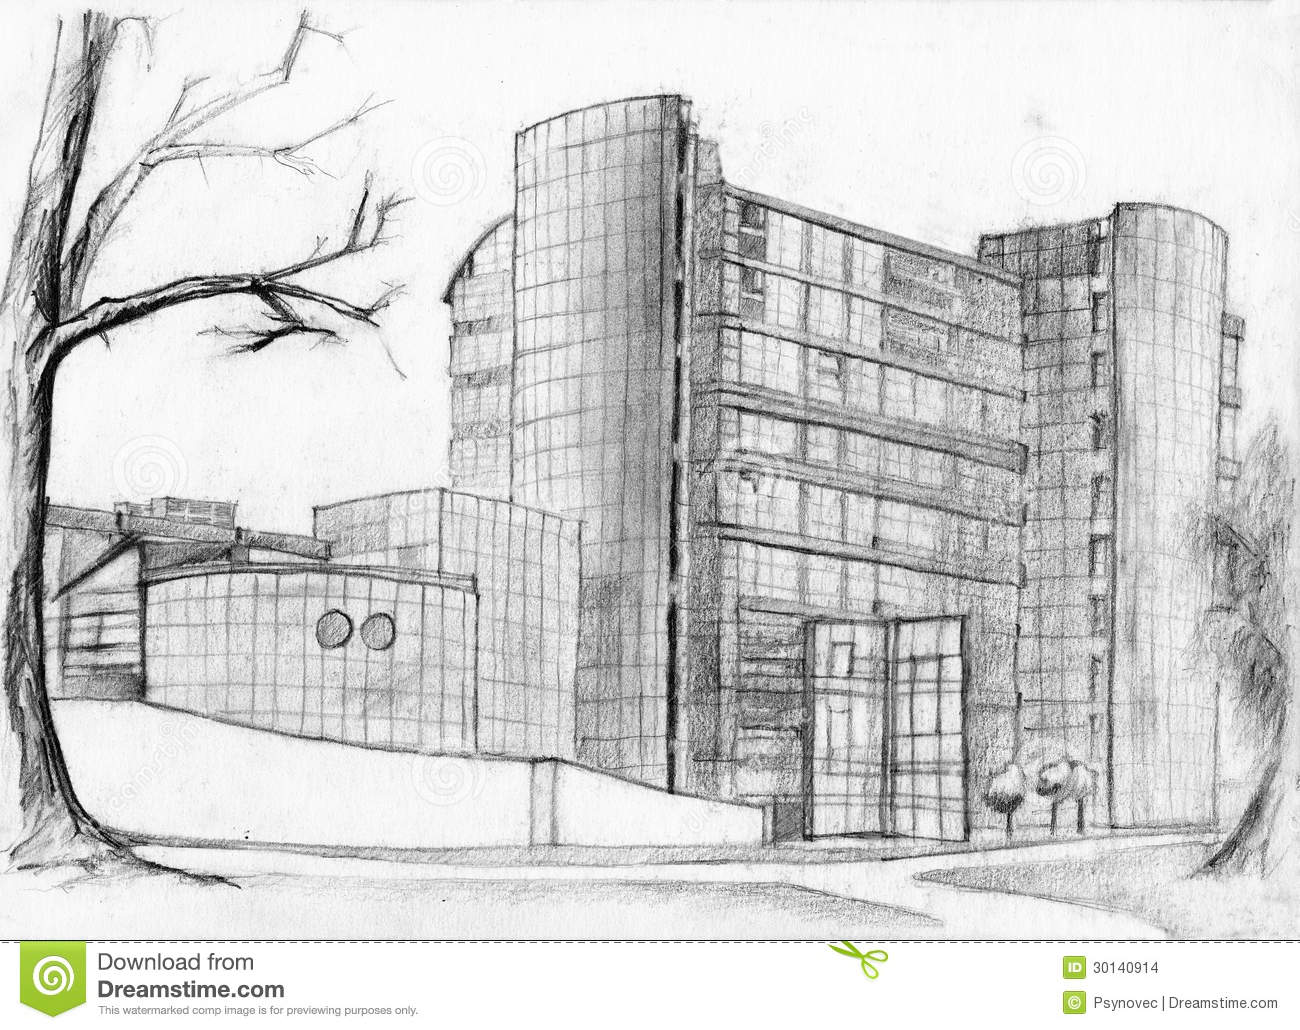 Architecture Buildings Sketch bank building sketch stock images - image: 30140914